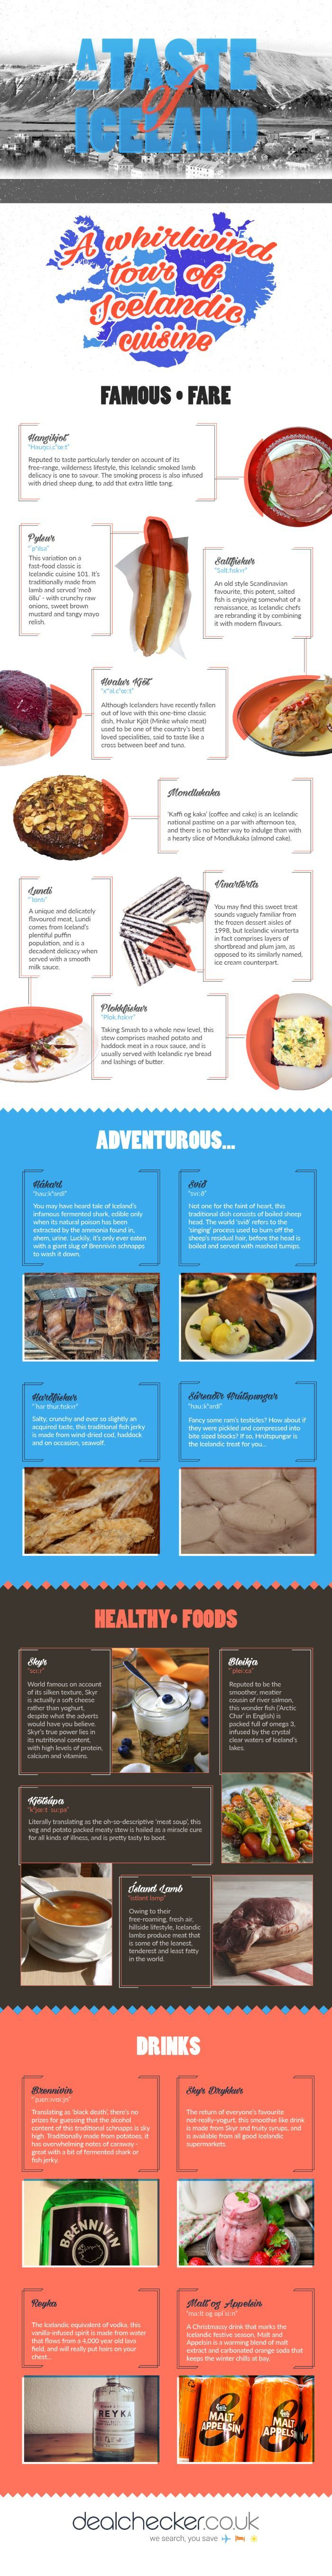 The Best Icelandic Foods - A Taste of Iceland #Infographic